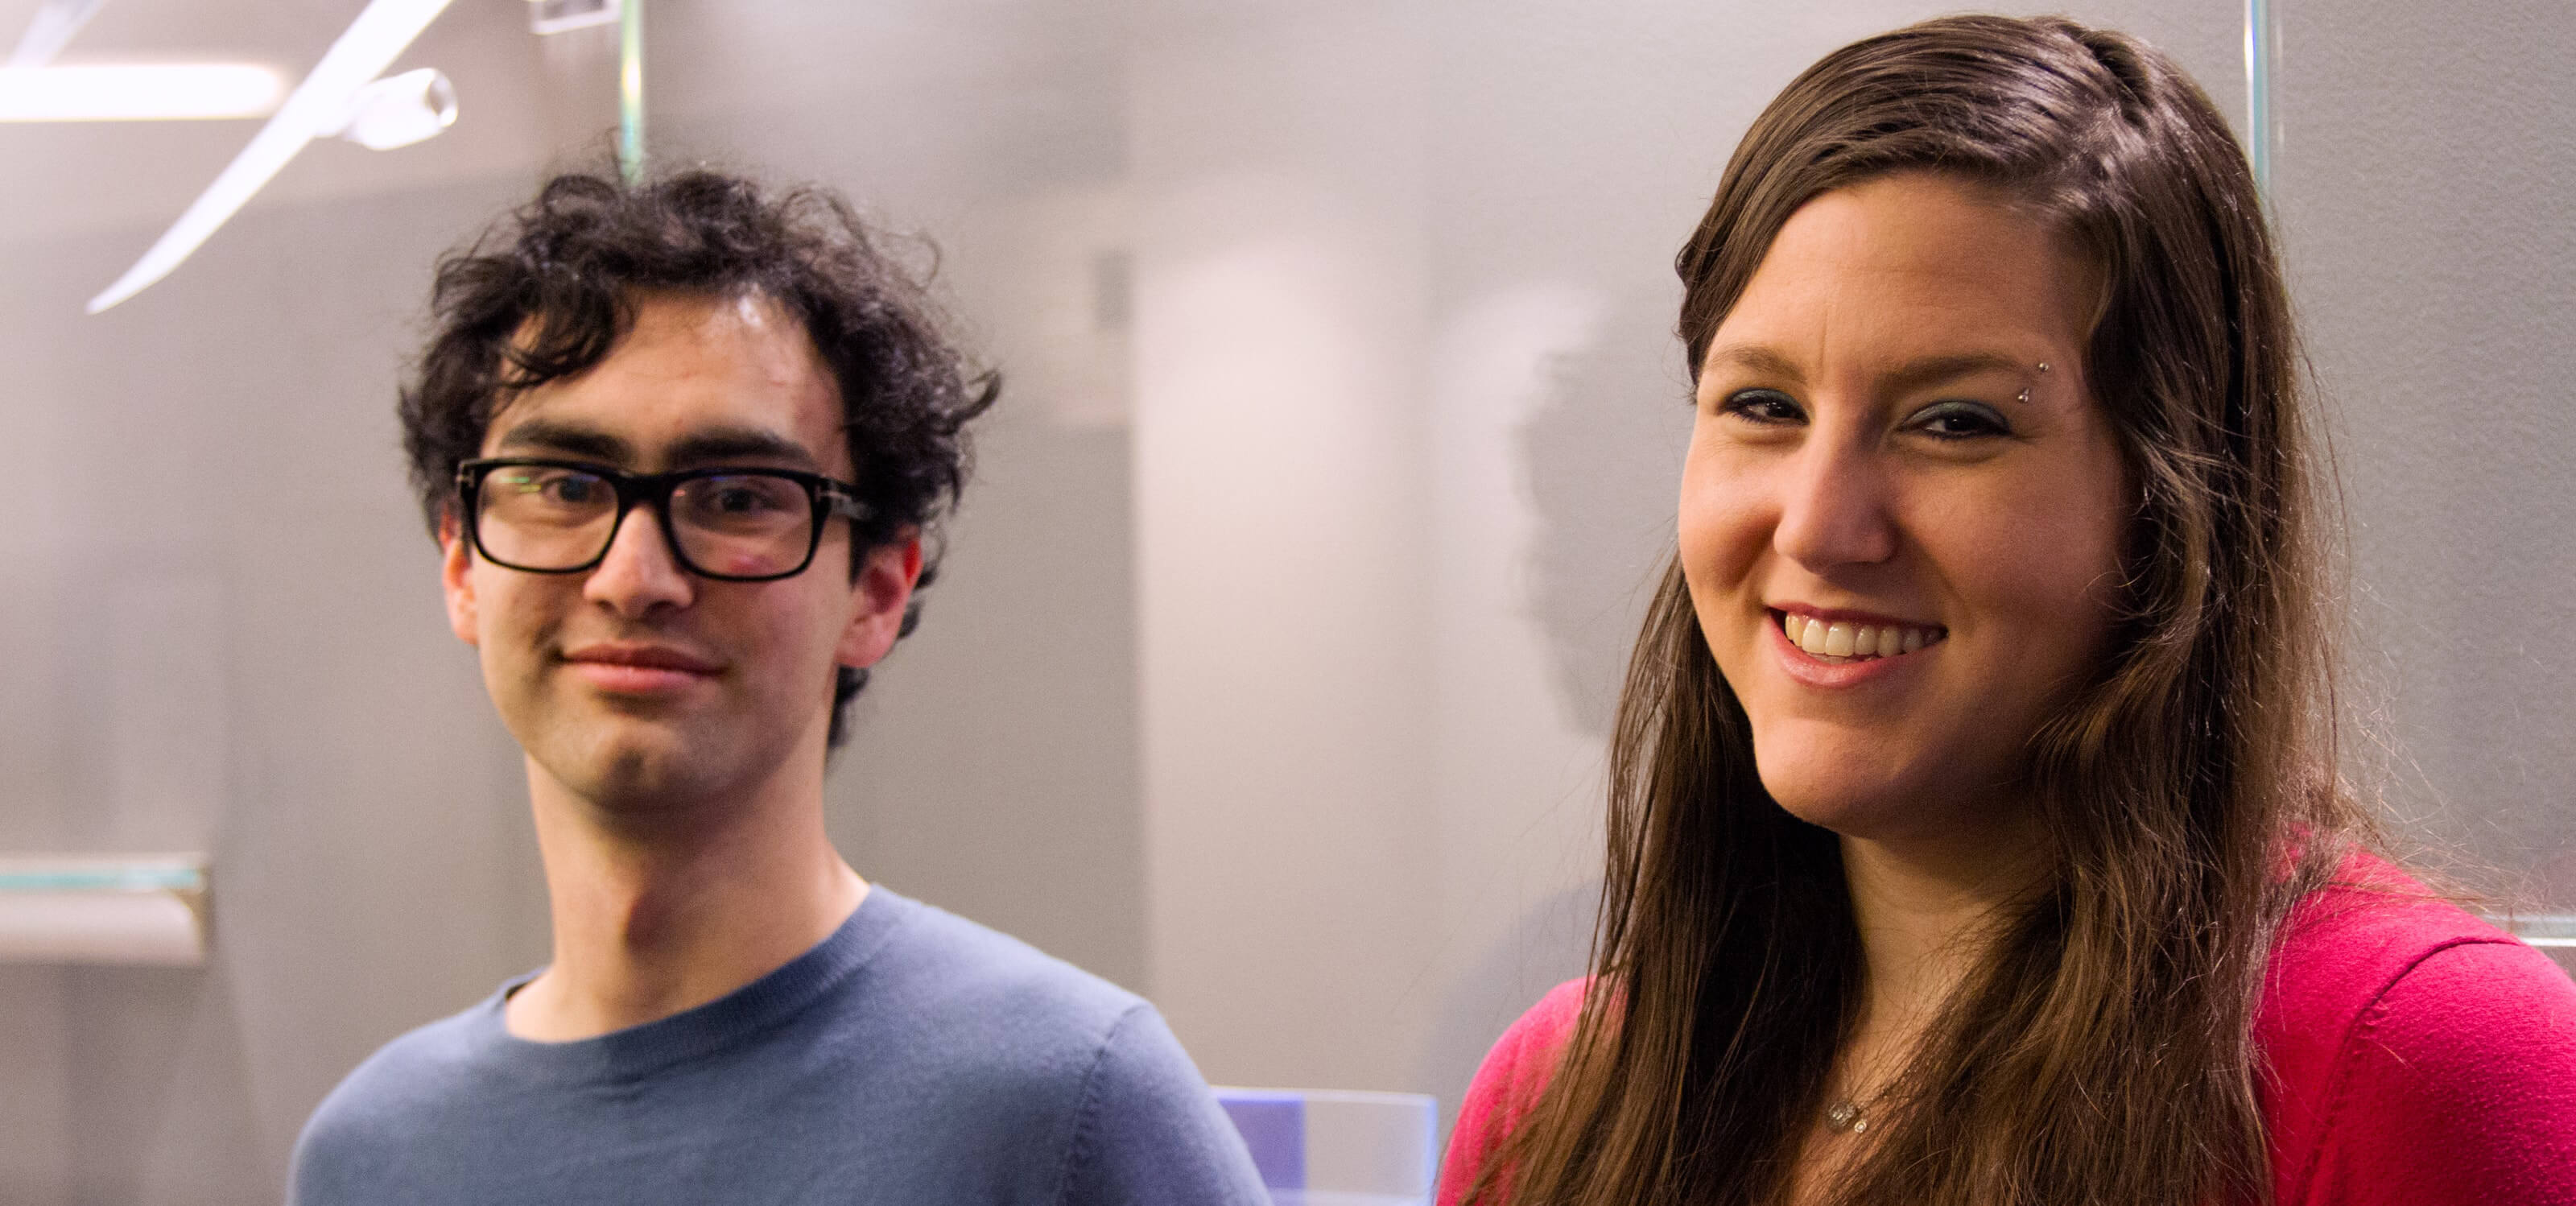 DigiPen students Harrison Barton and Alexandra Lucas smiling